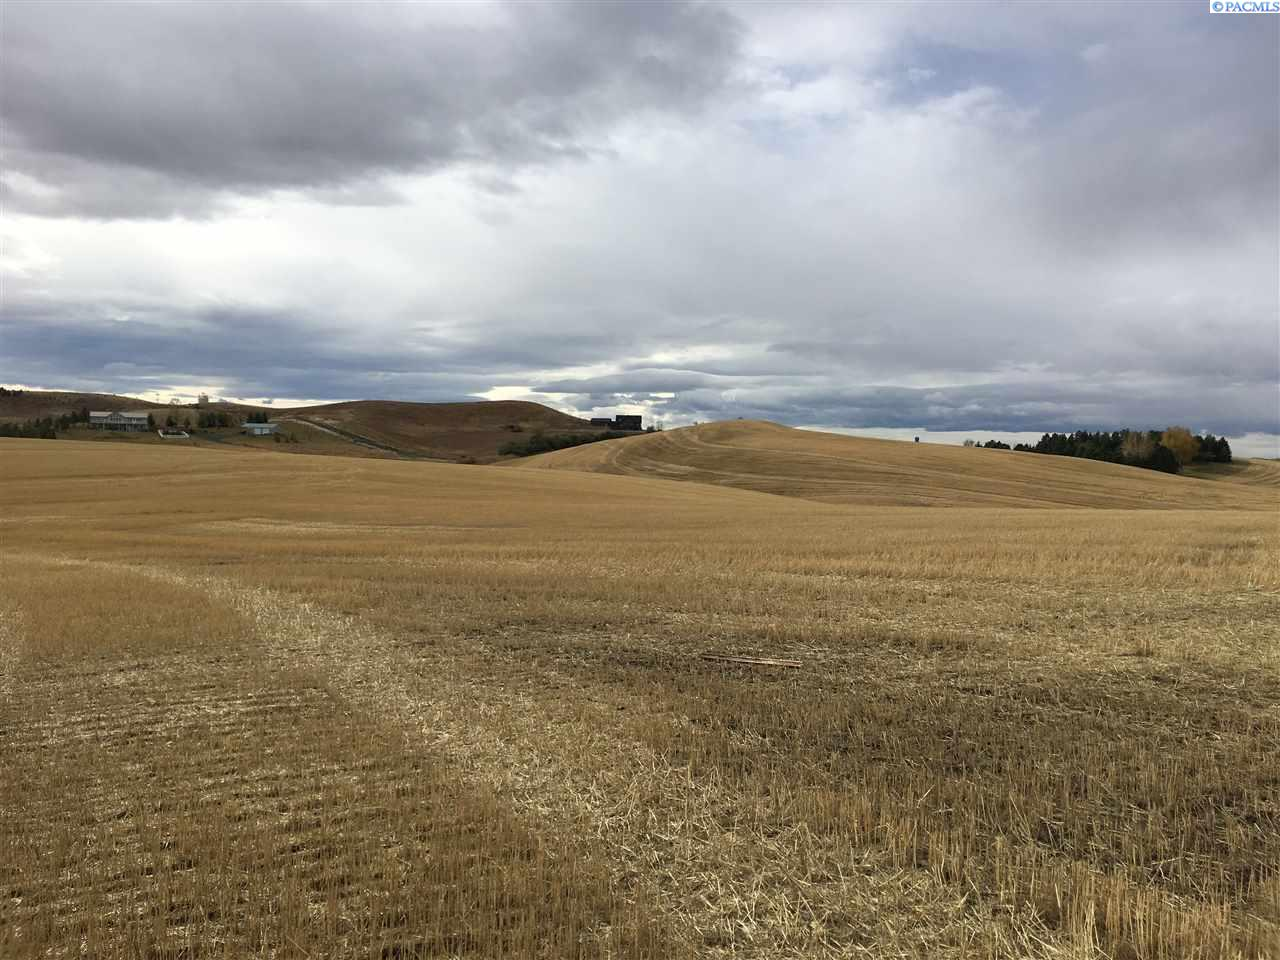 Land / Lots for Sale at Tbd Orville Boyd Road Tbd Orville Boyd Road Pullman, Washington 99163 United States